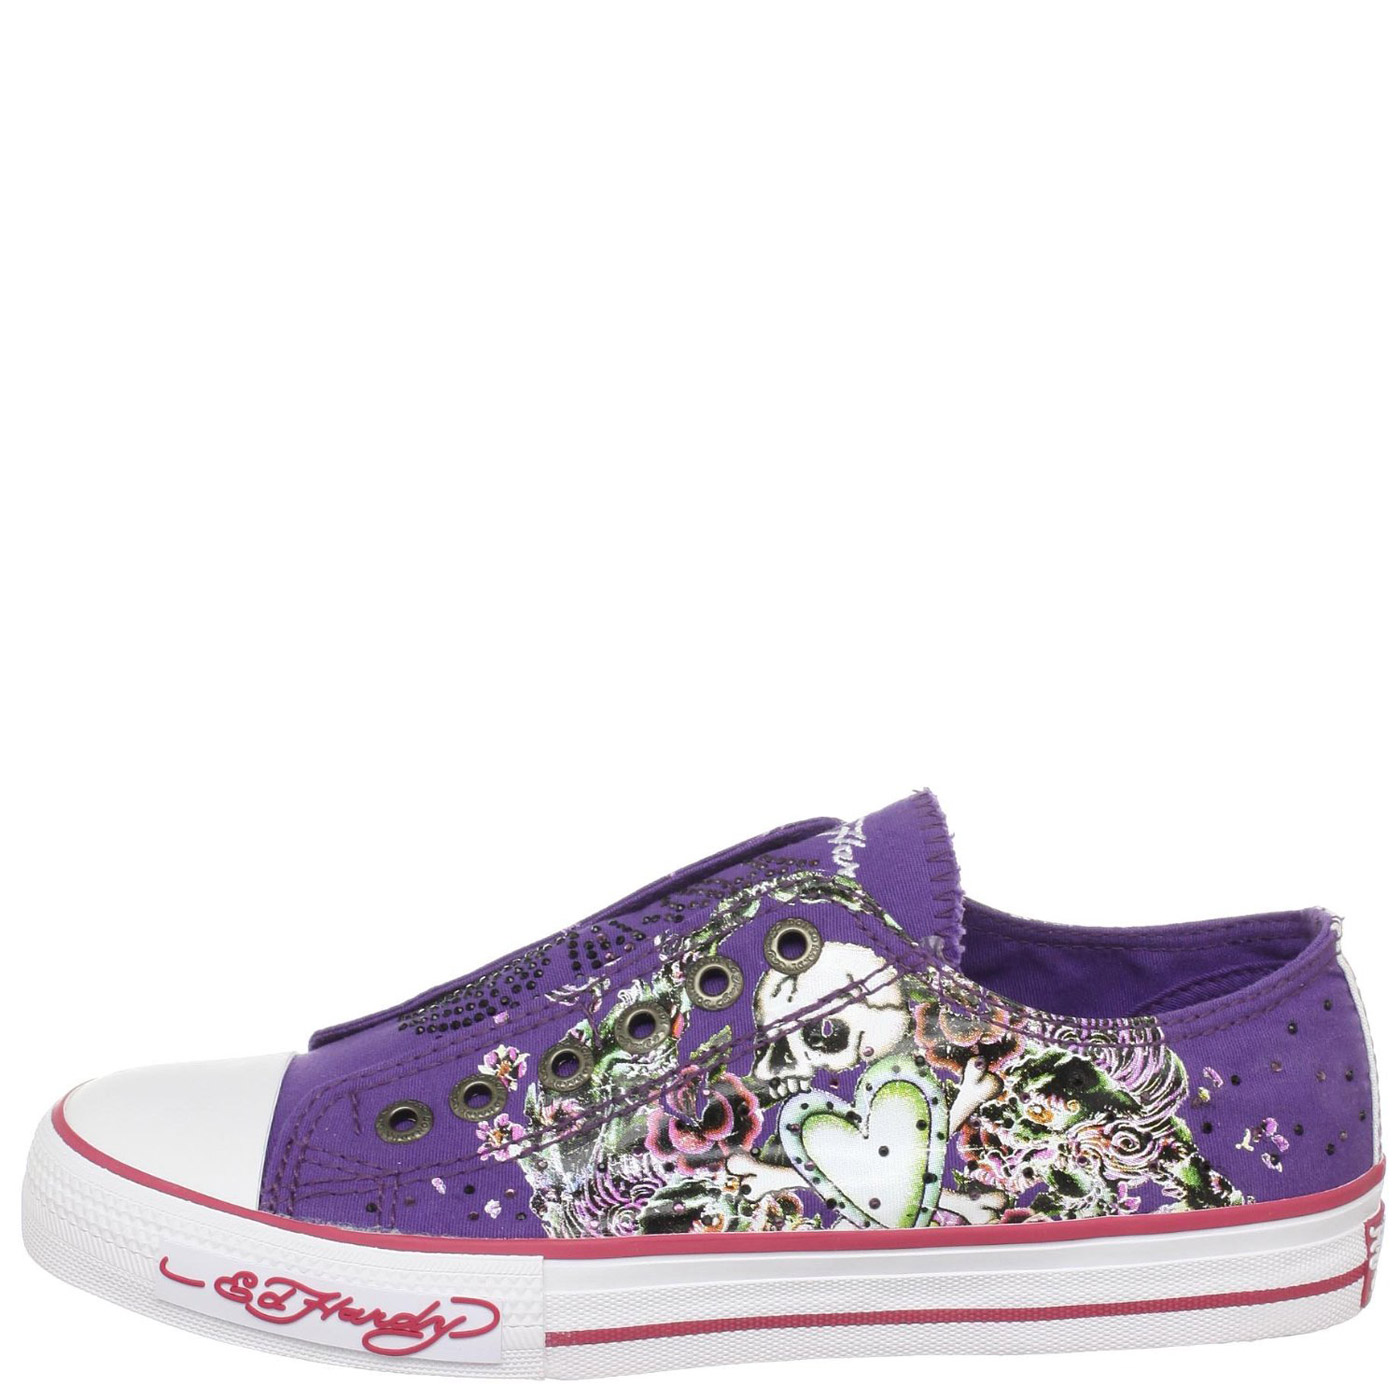 Ed Hardy Lowrise Stone Shoe for Kids Girls - Purple